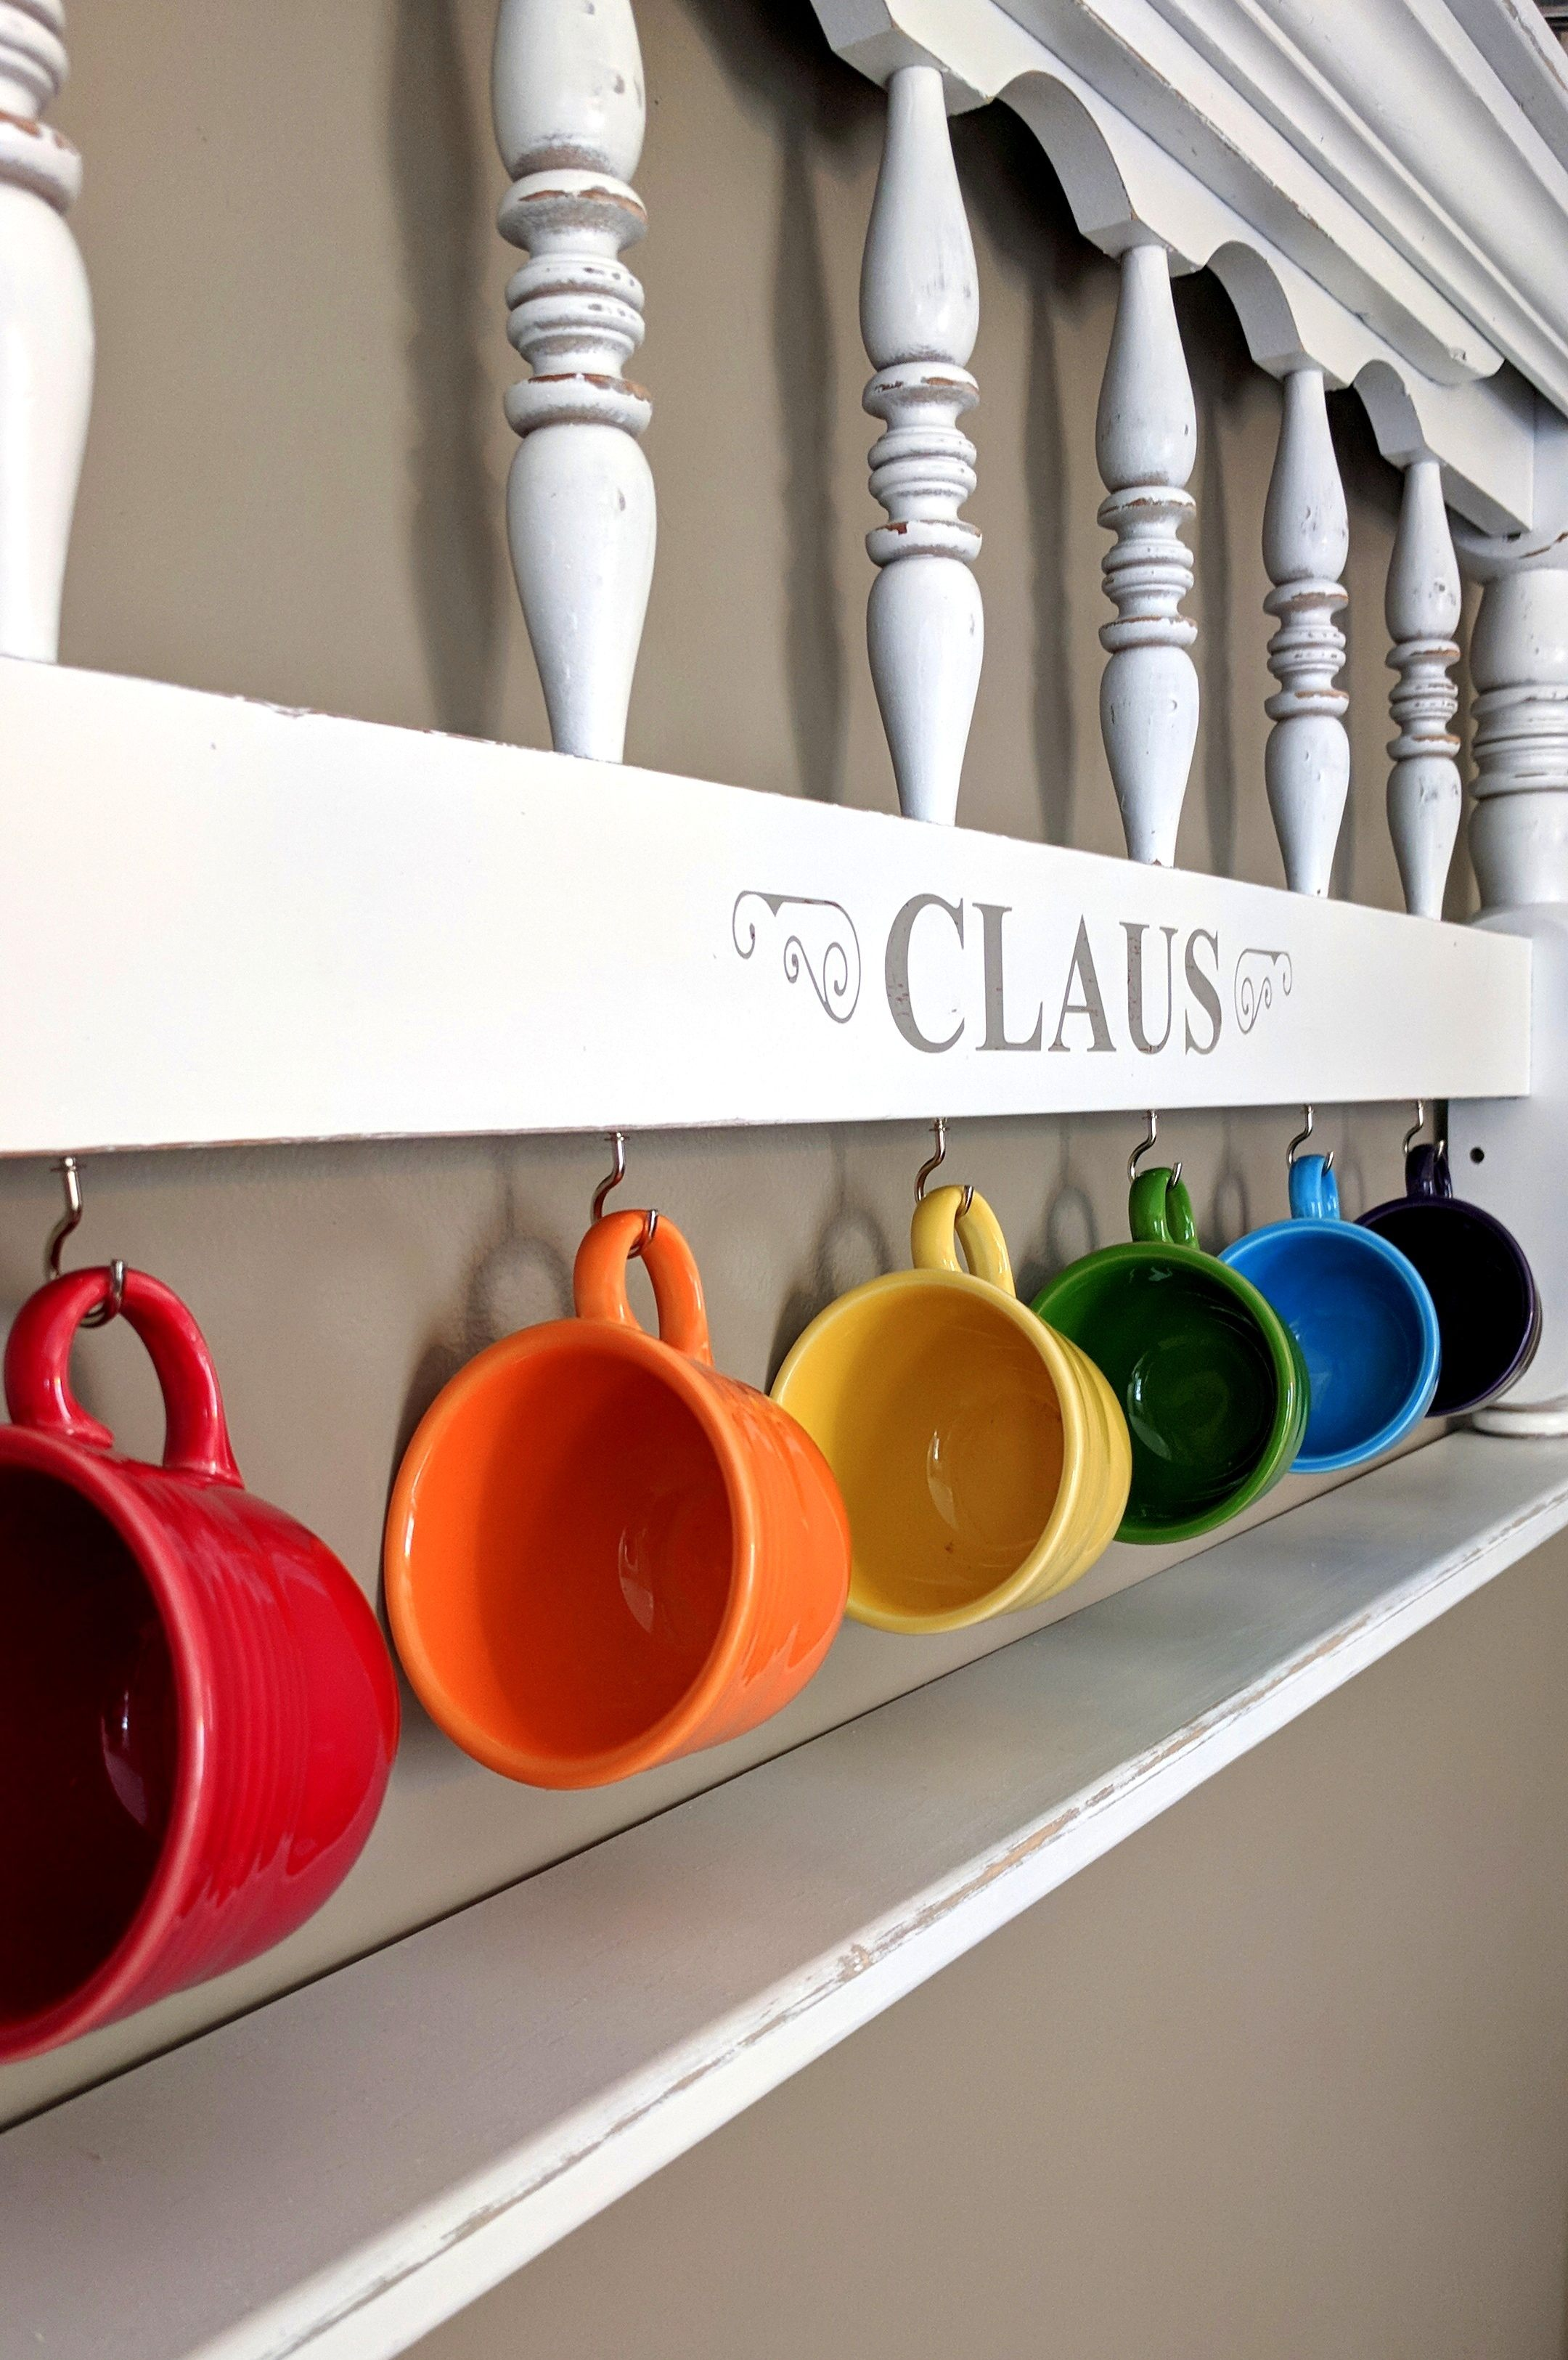 Upcycled Headboard Ideas For Fiestaware Display Or Teacup Rack